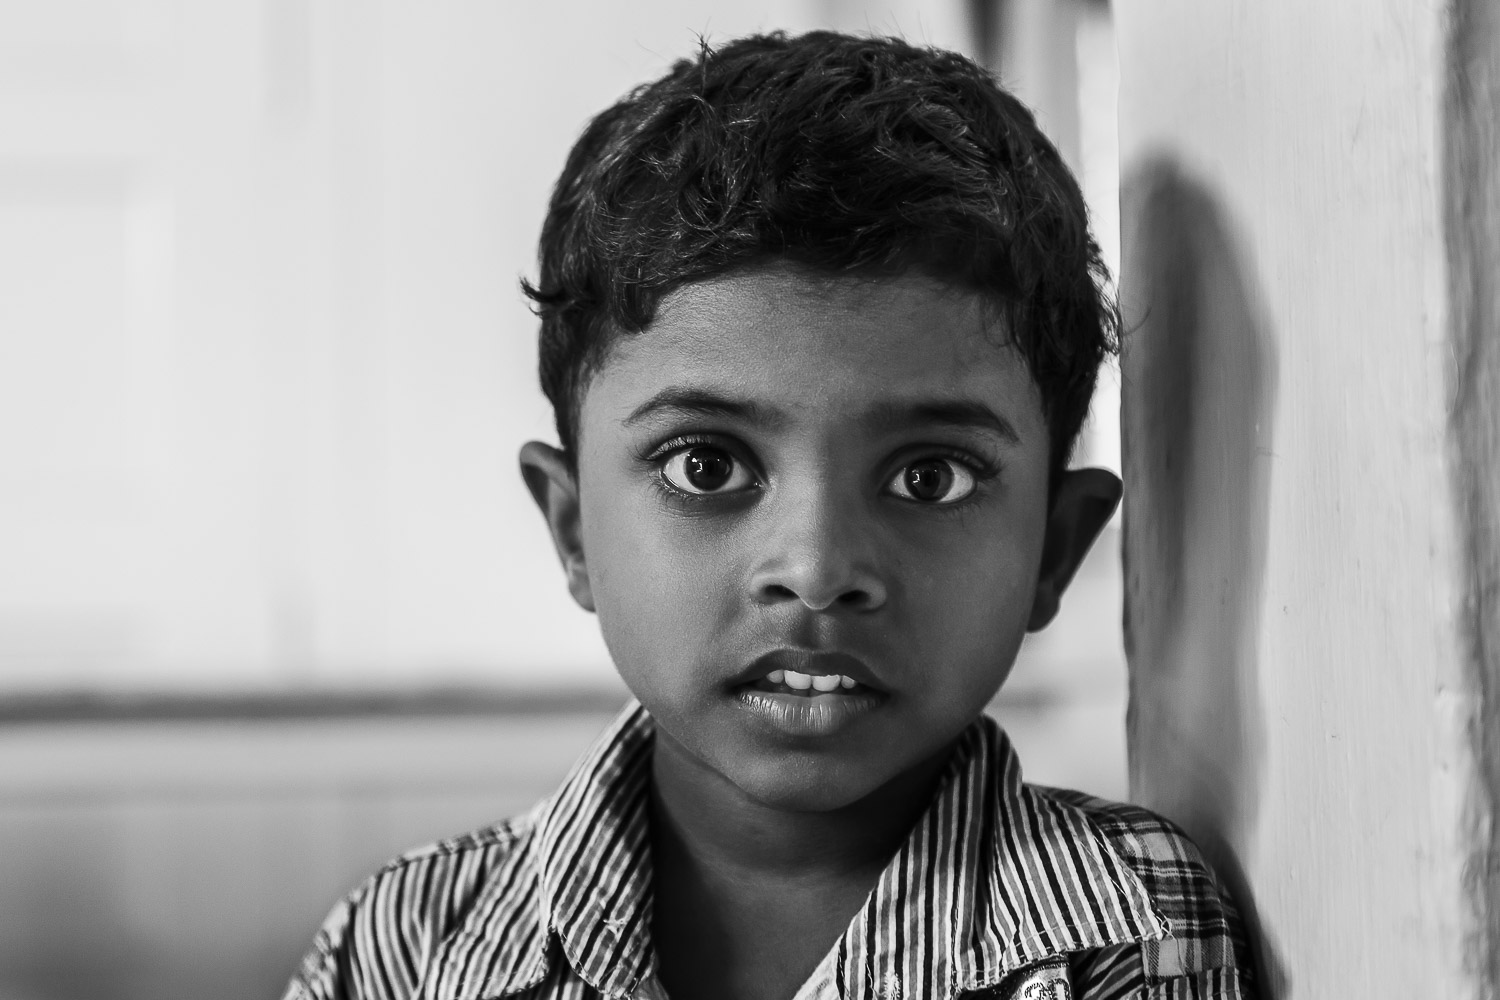 The face of innocence on St. Thomas Mount in Chennai, India.